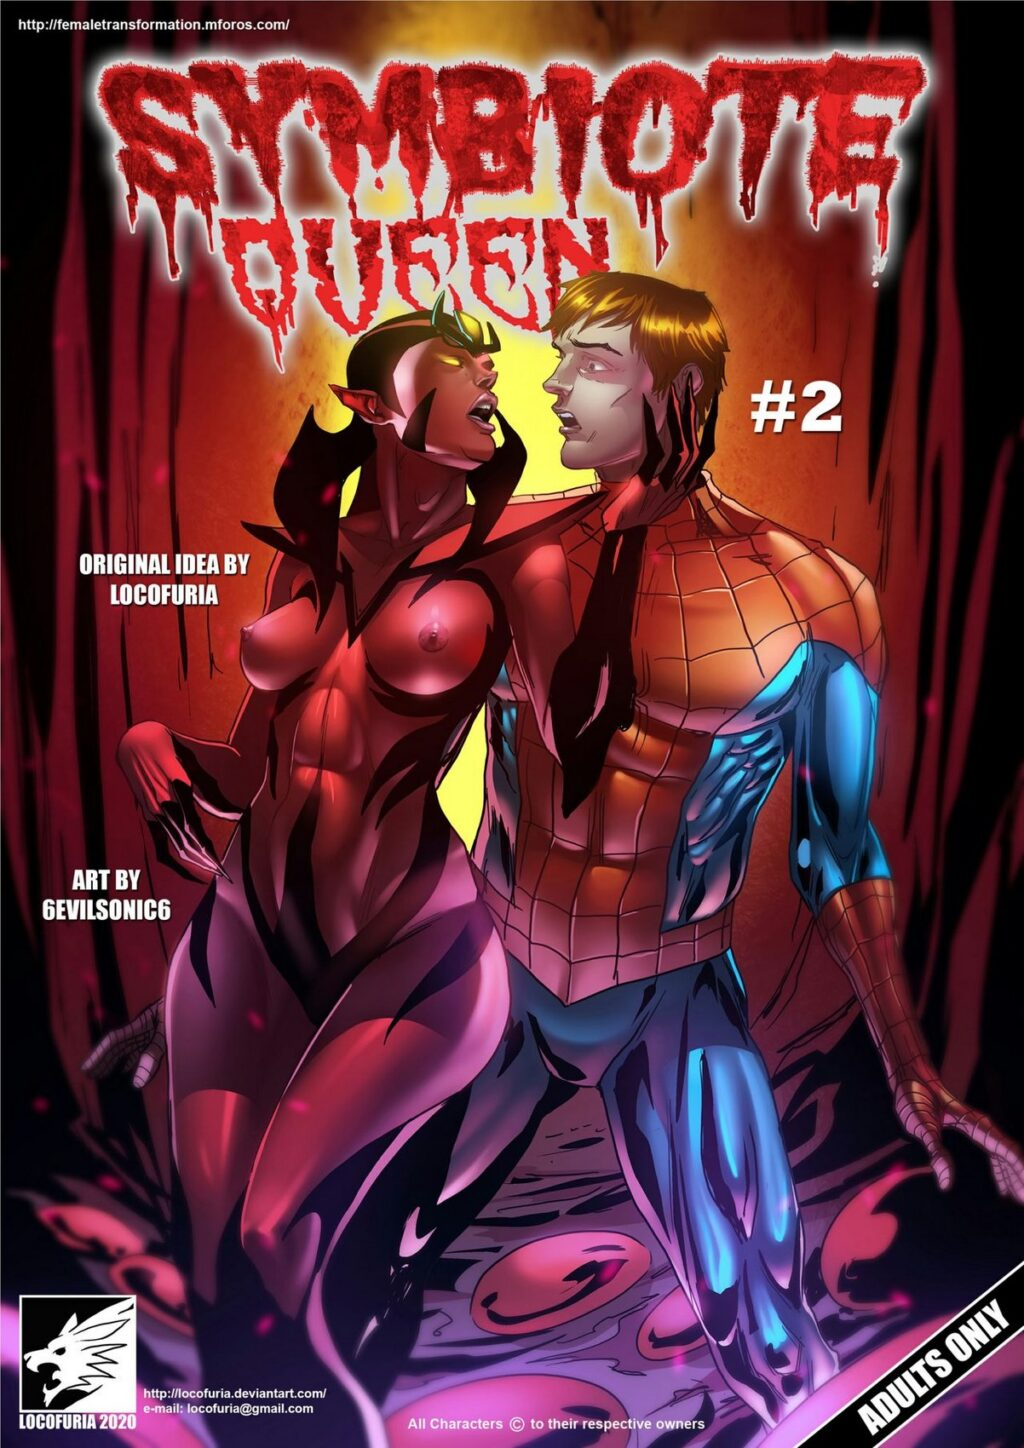 Marvel-Porn-Comics-Mary-Jane-Gang-rape-orgy-Bondage-BDSM-Creature-Cuties-Venom-Carnage-Spider-man-parasite-sexy-slimes-Turned-out-mind-control-Symbiote-Queen-#-2-groupe-viol-orgie-Bondage-BDSM-Créature-Cuties-Venom-Carnage-Spider-man-parasite-sexy-slimes-s'est-avéré-contrôle-de-l'esprit